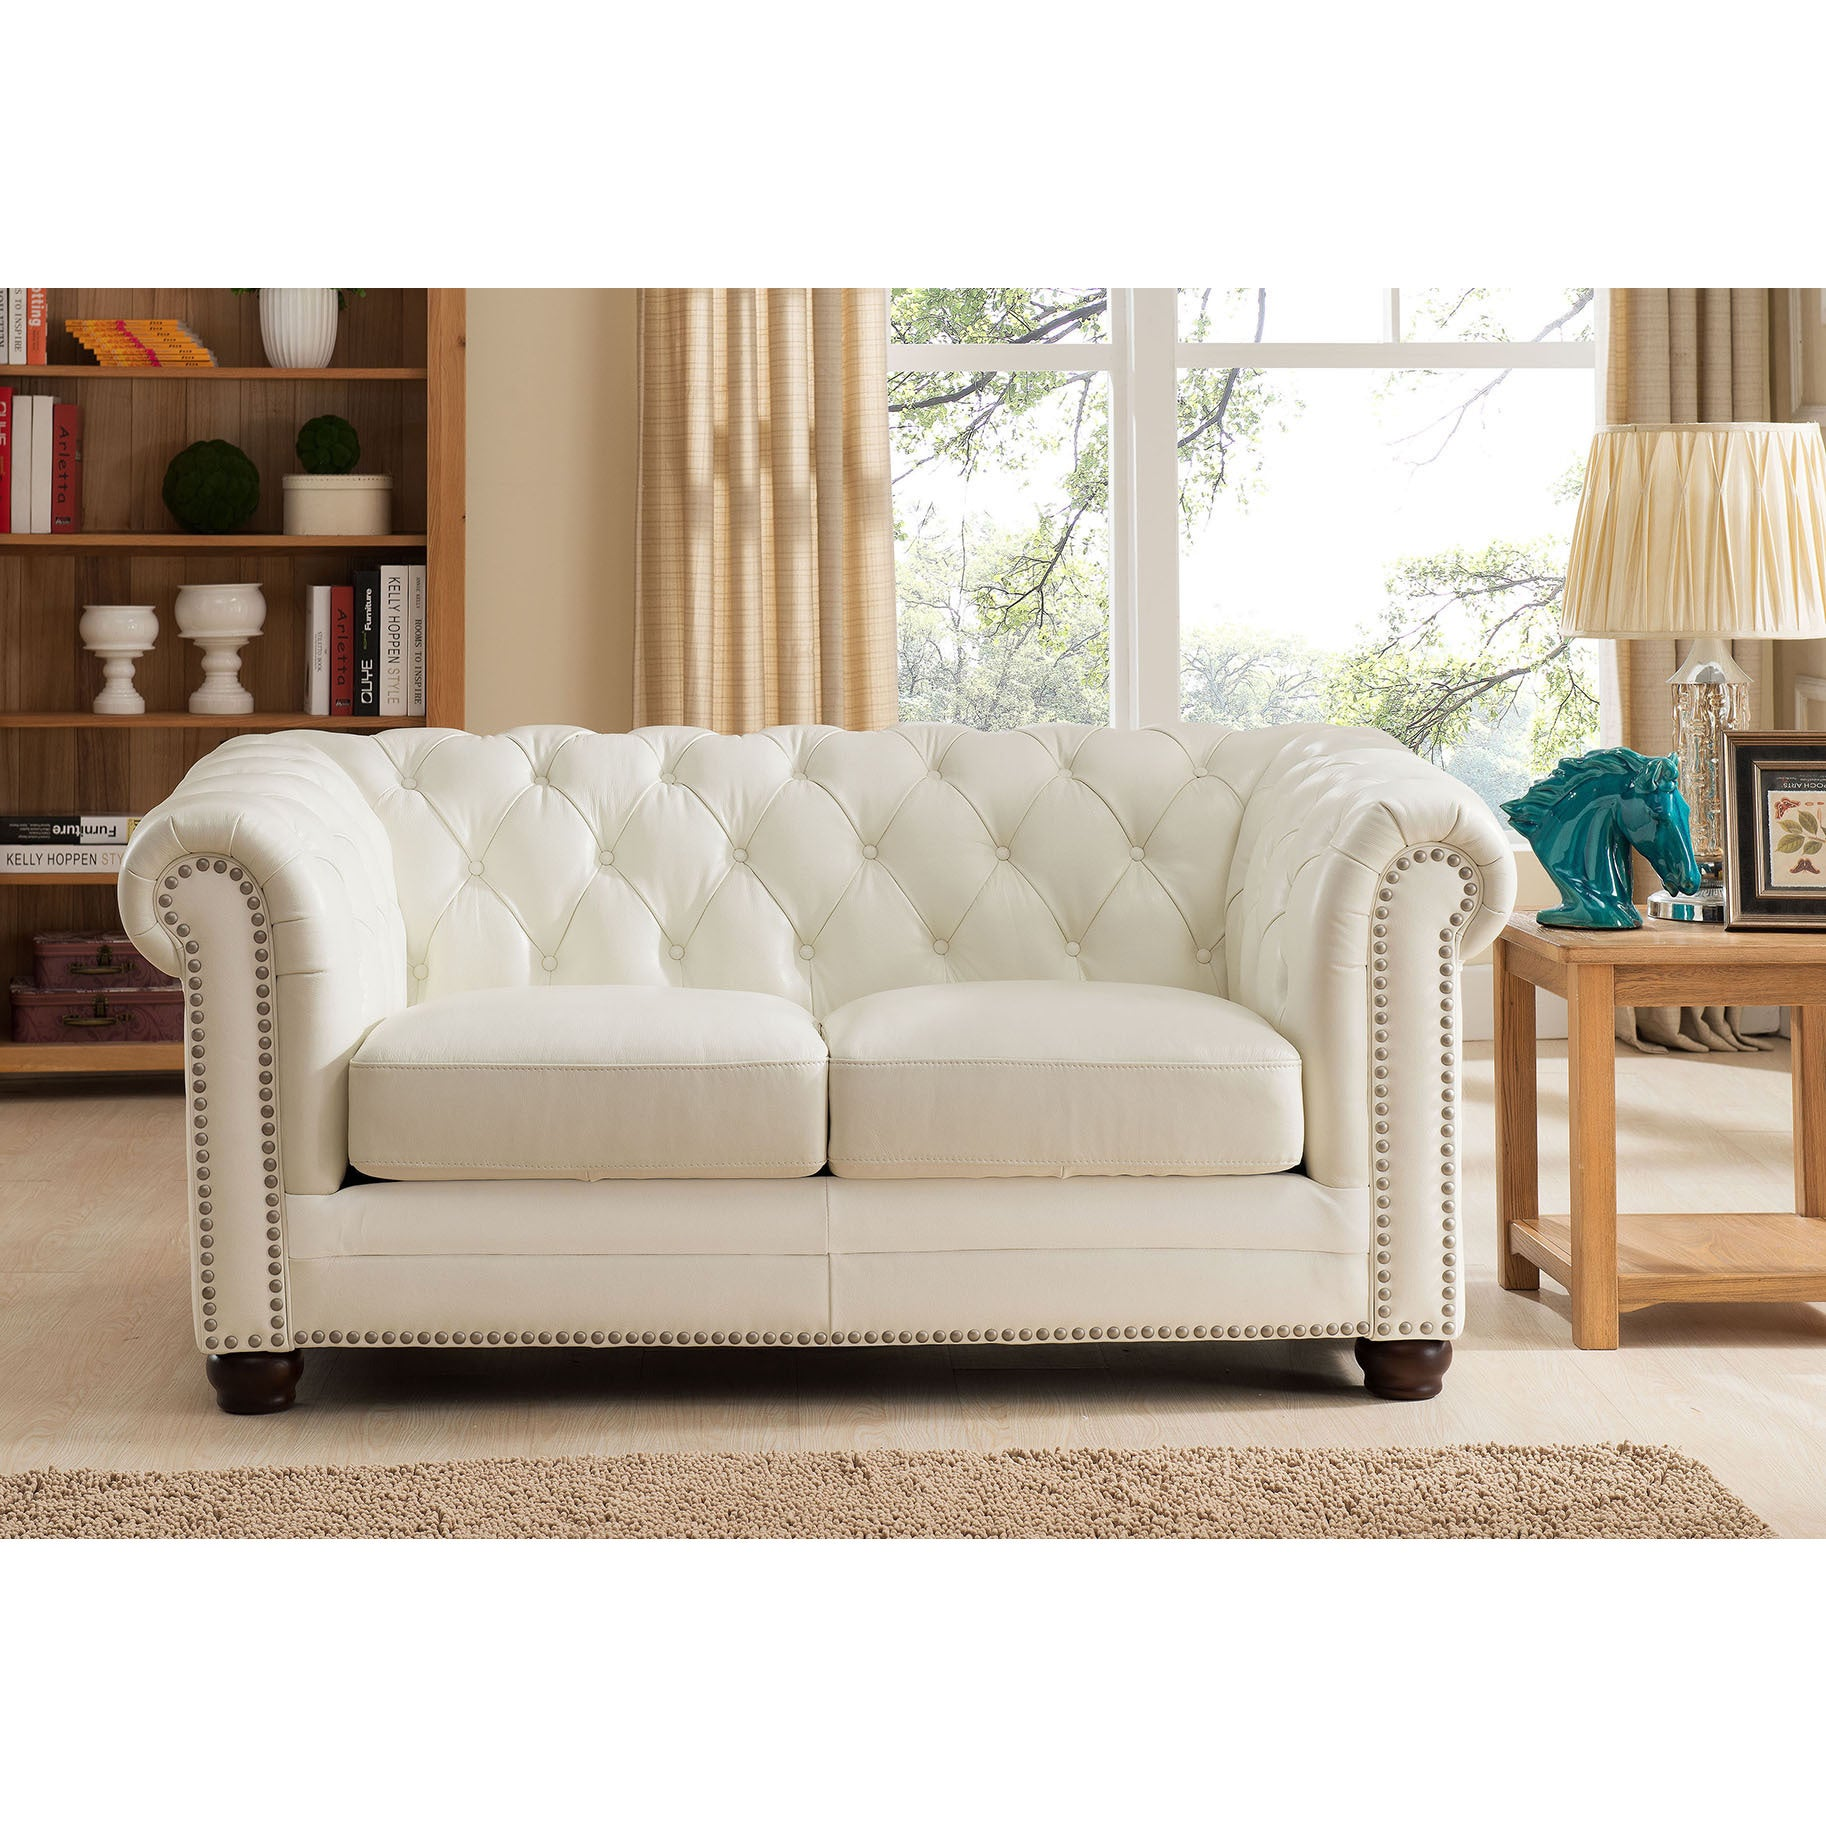 Nebraska Leather Chesterfield Sofa, Loveseat and Chair Set - Free ...